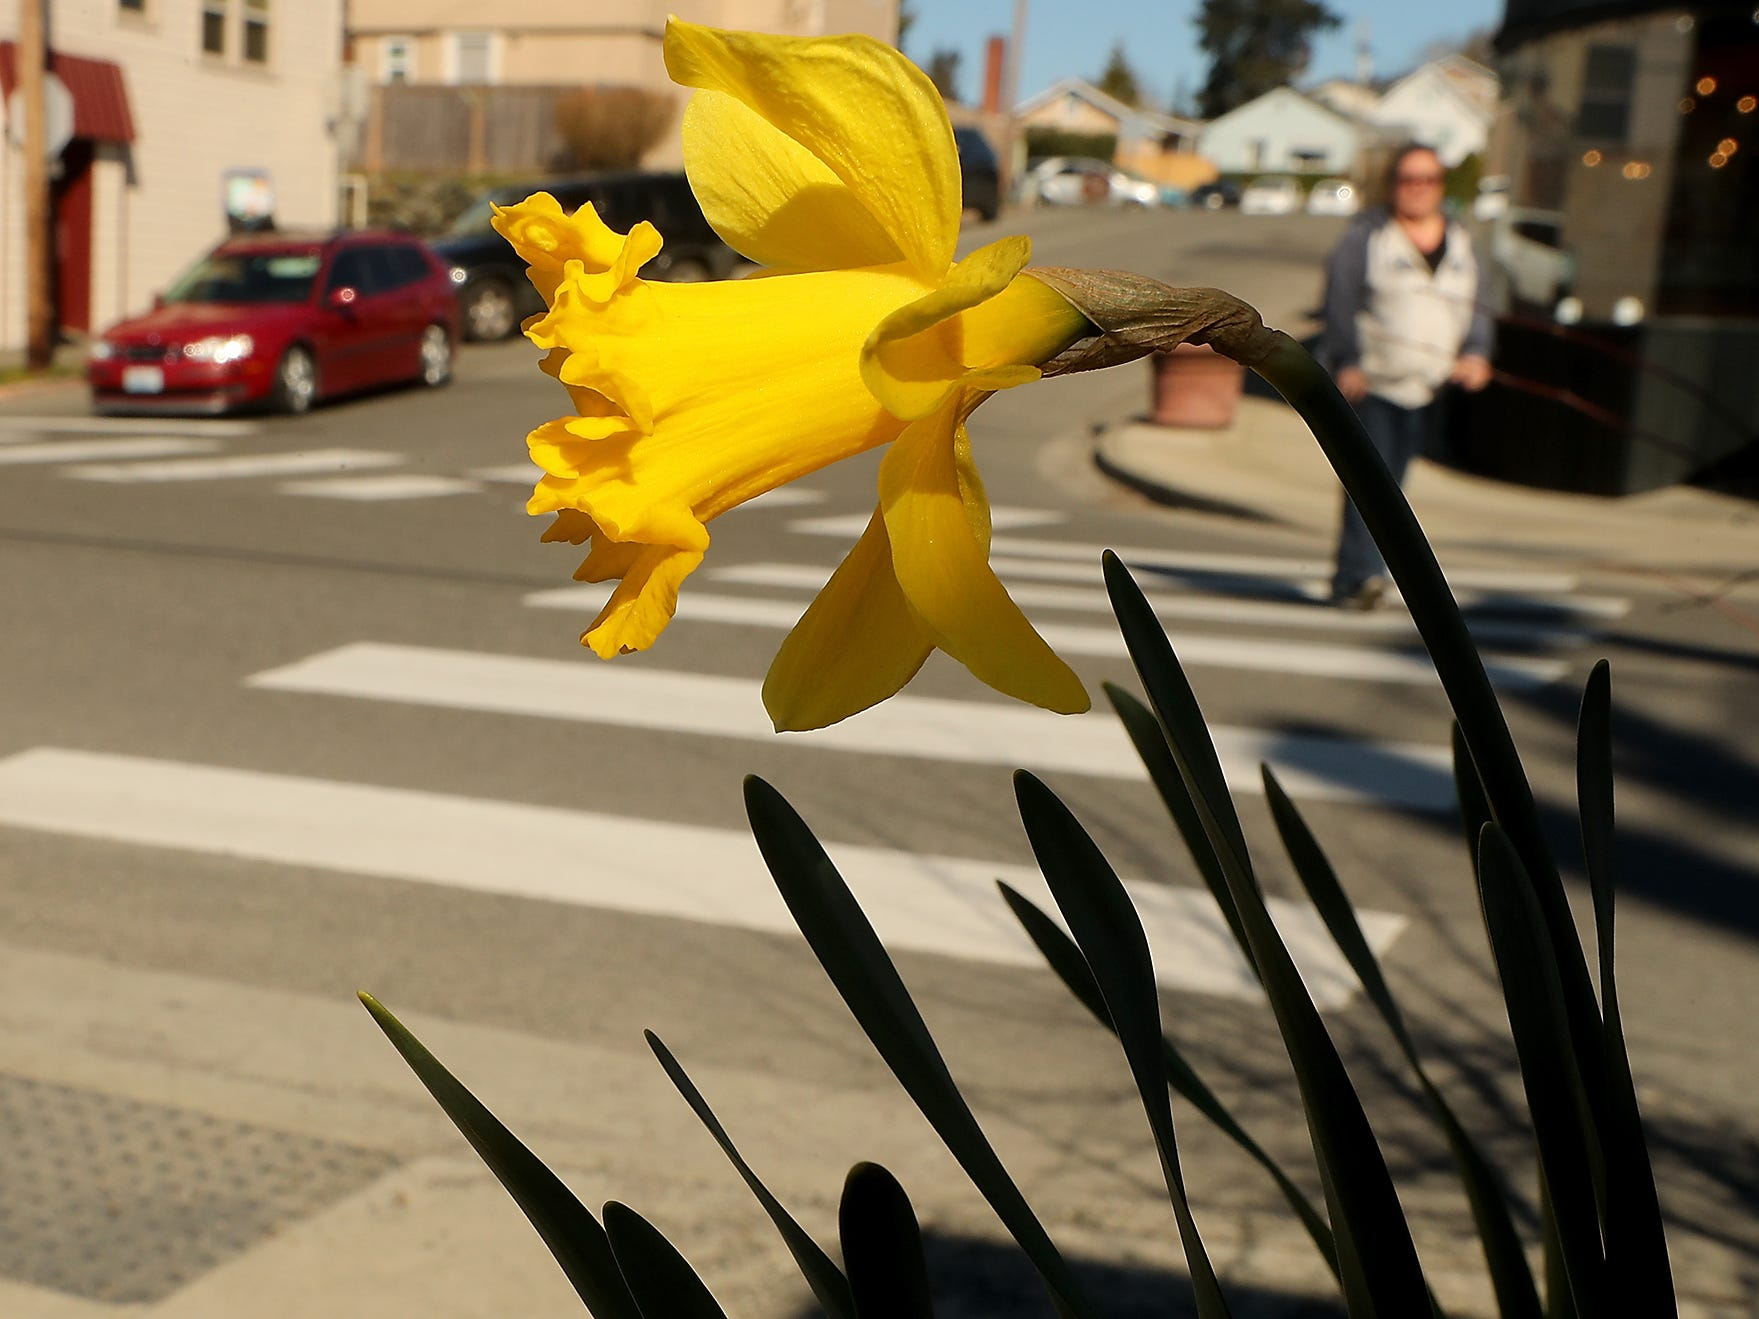 A daffodil blooms on the corner of 11th and Pitt in Manette on Monday, March 18, 2019.